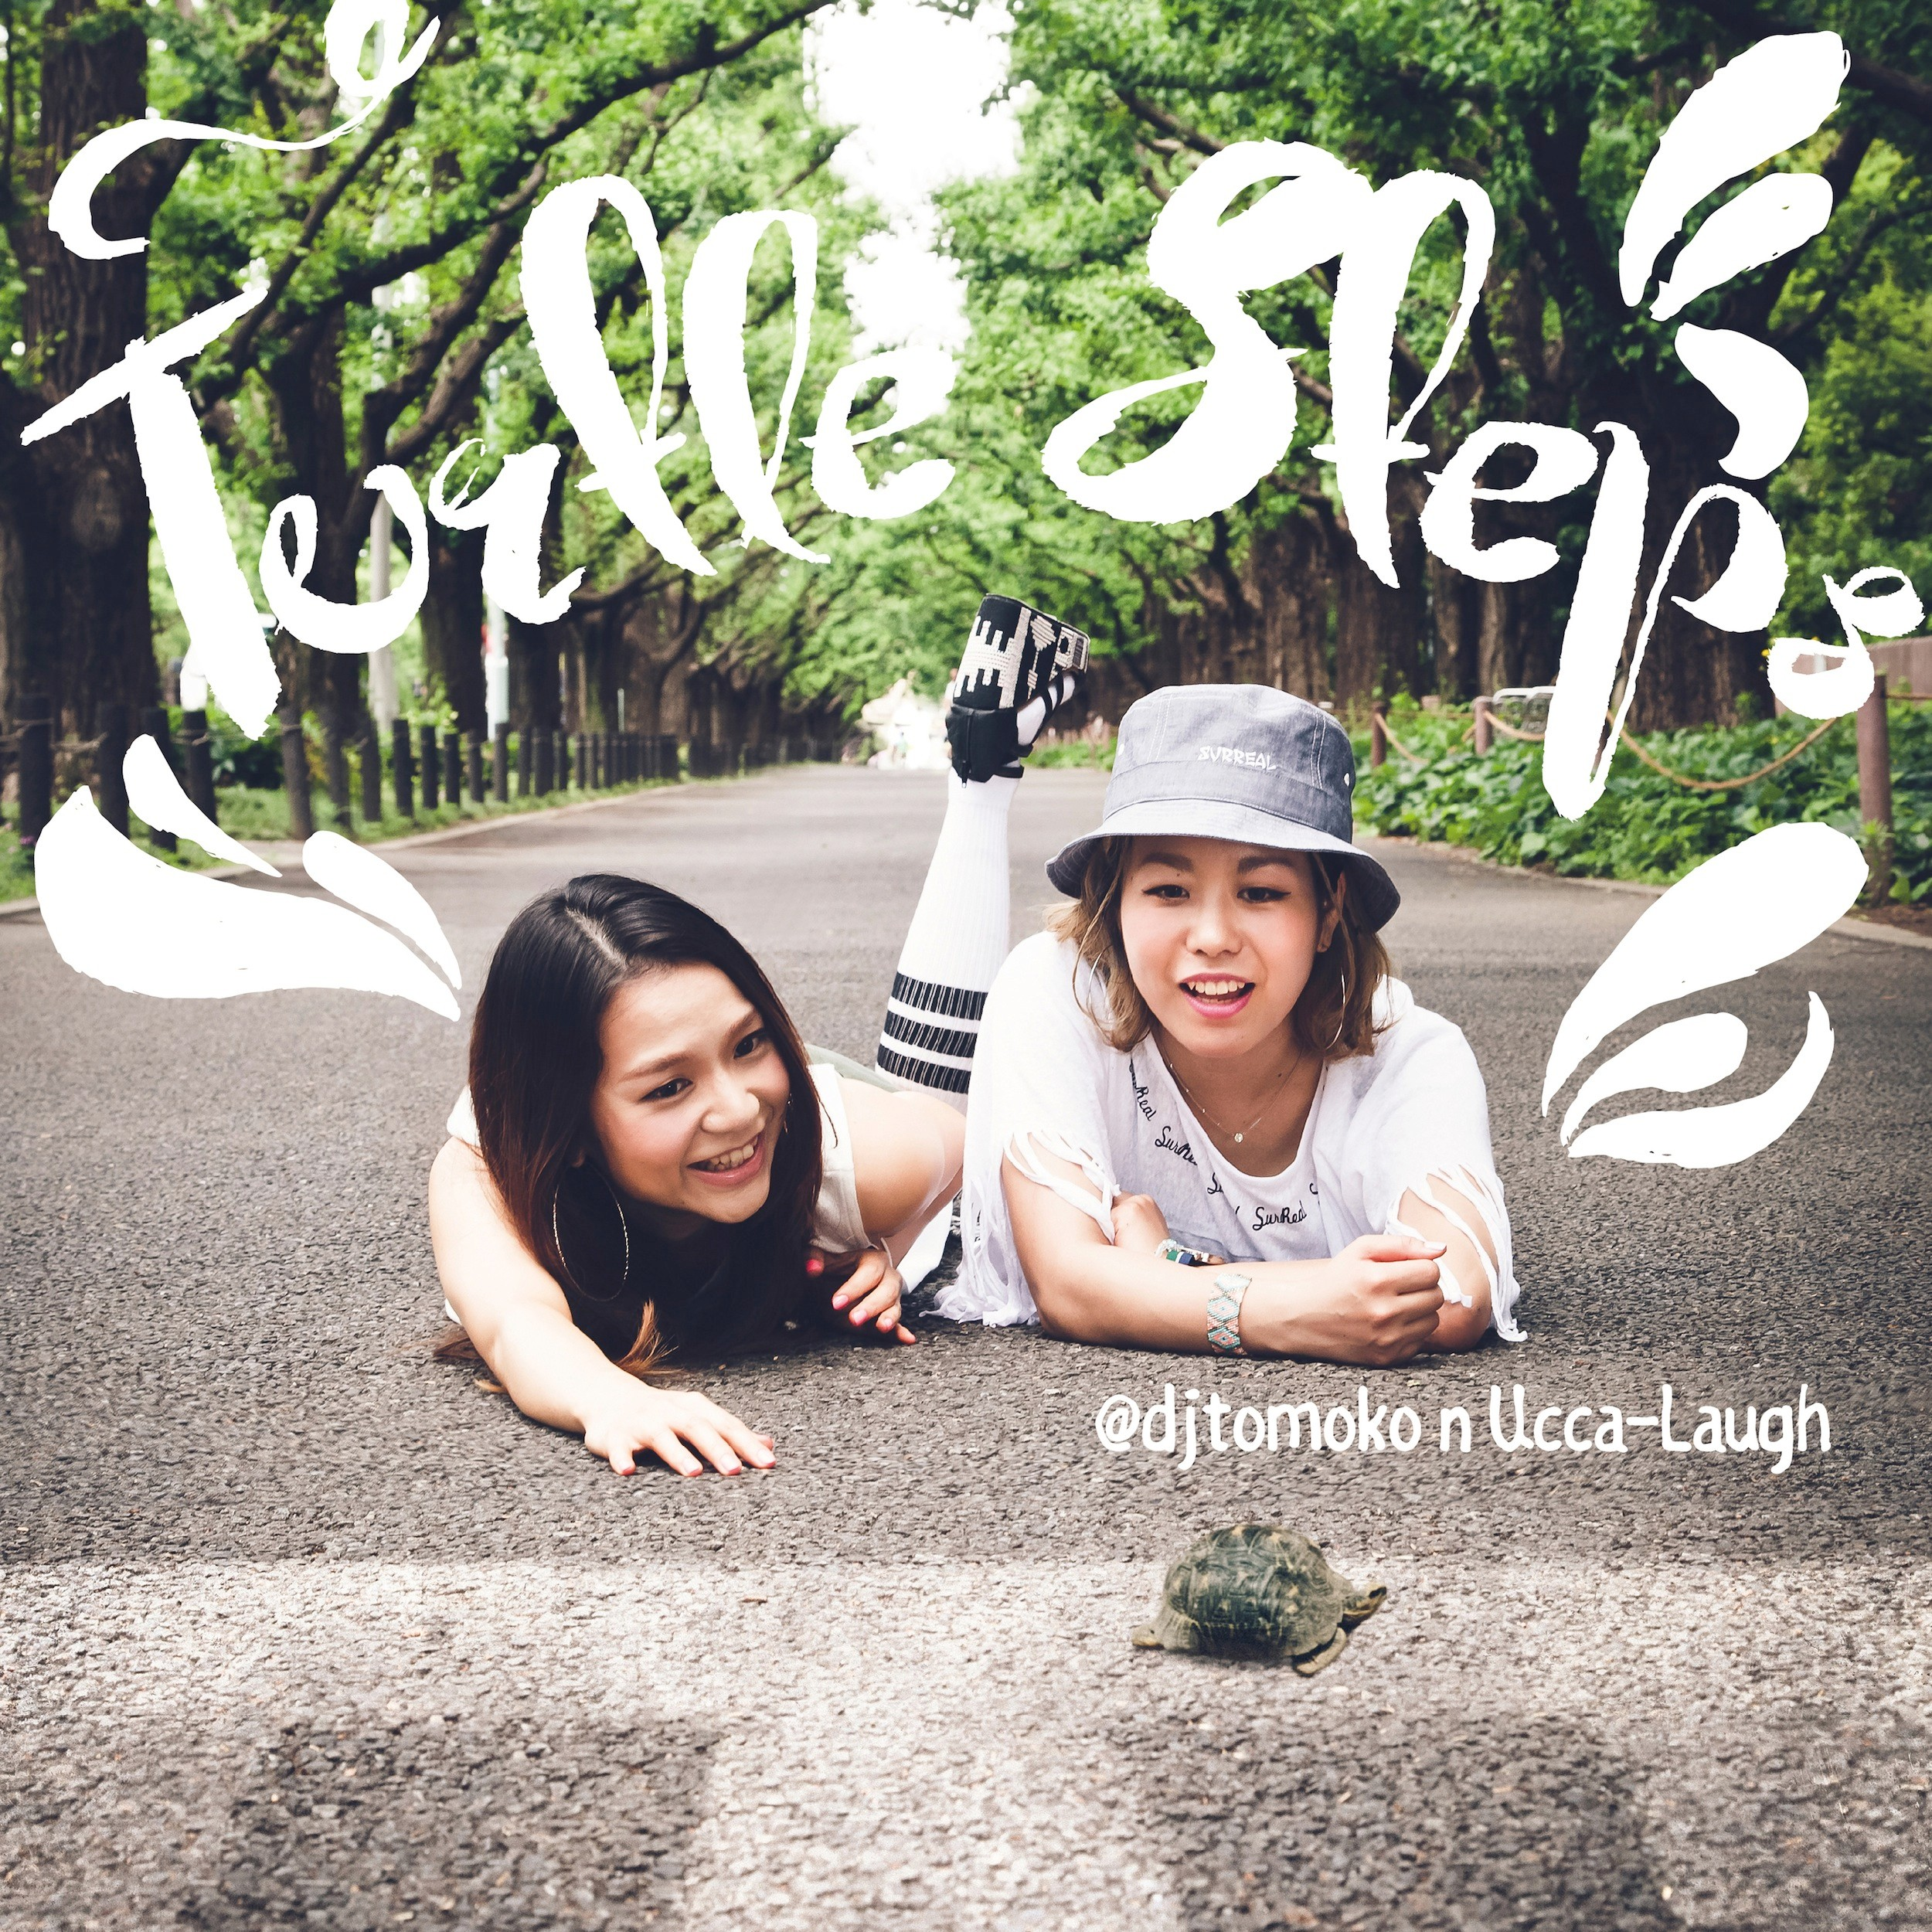 Image of Turtle Steps / @djtomoko n Ucca-Laugh